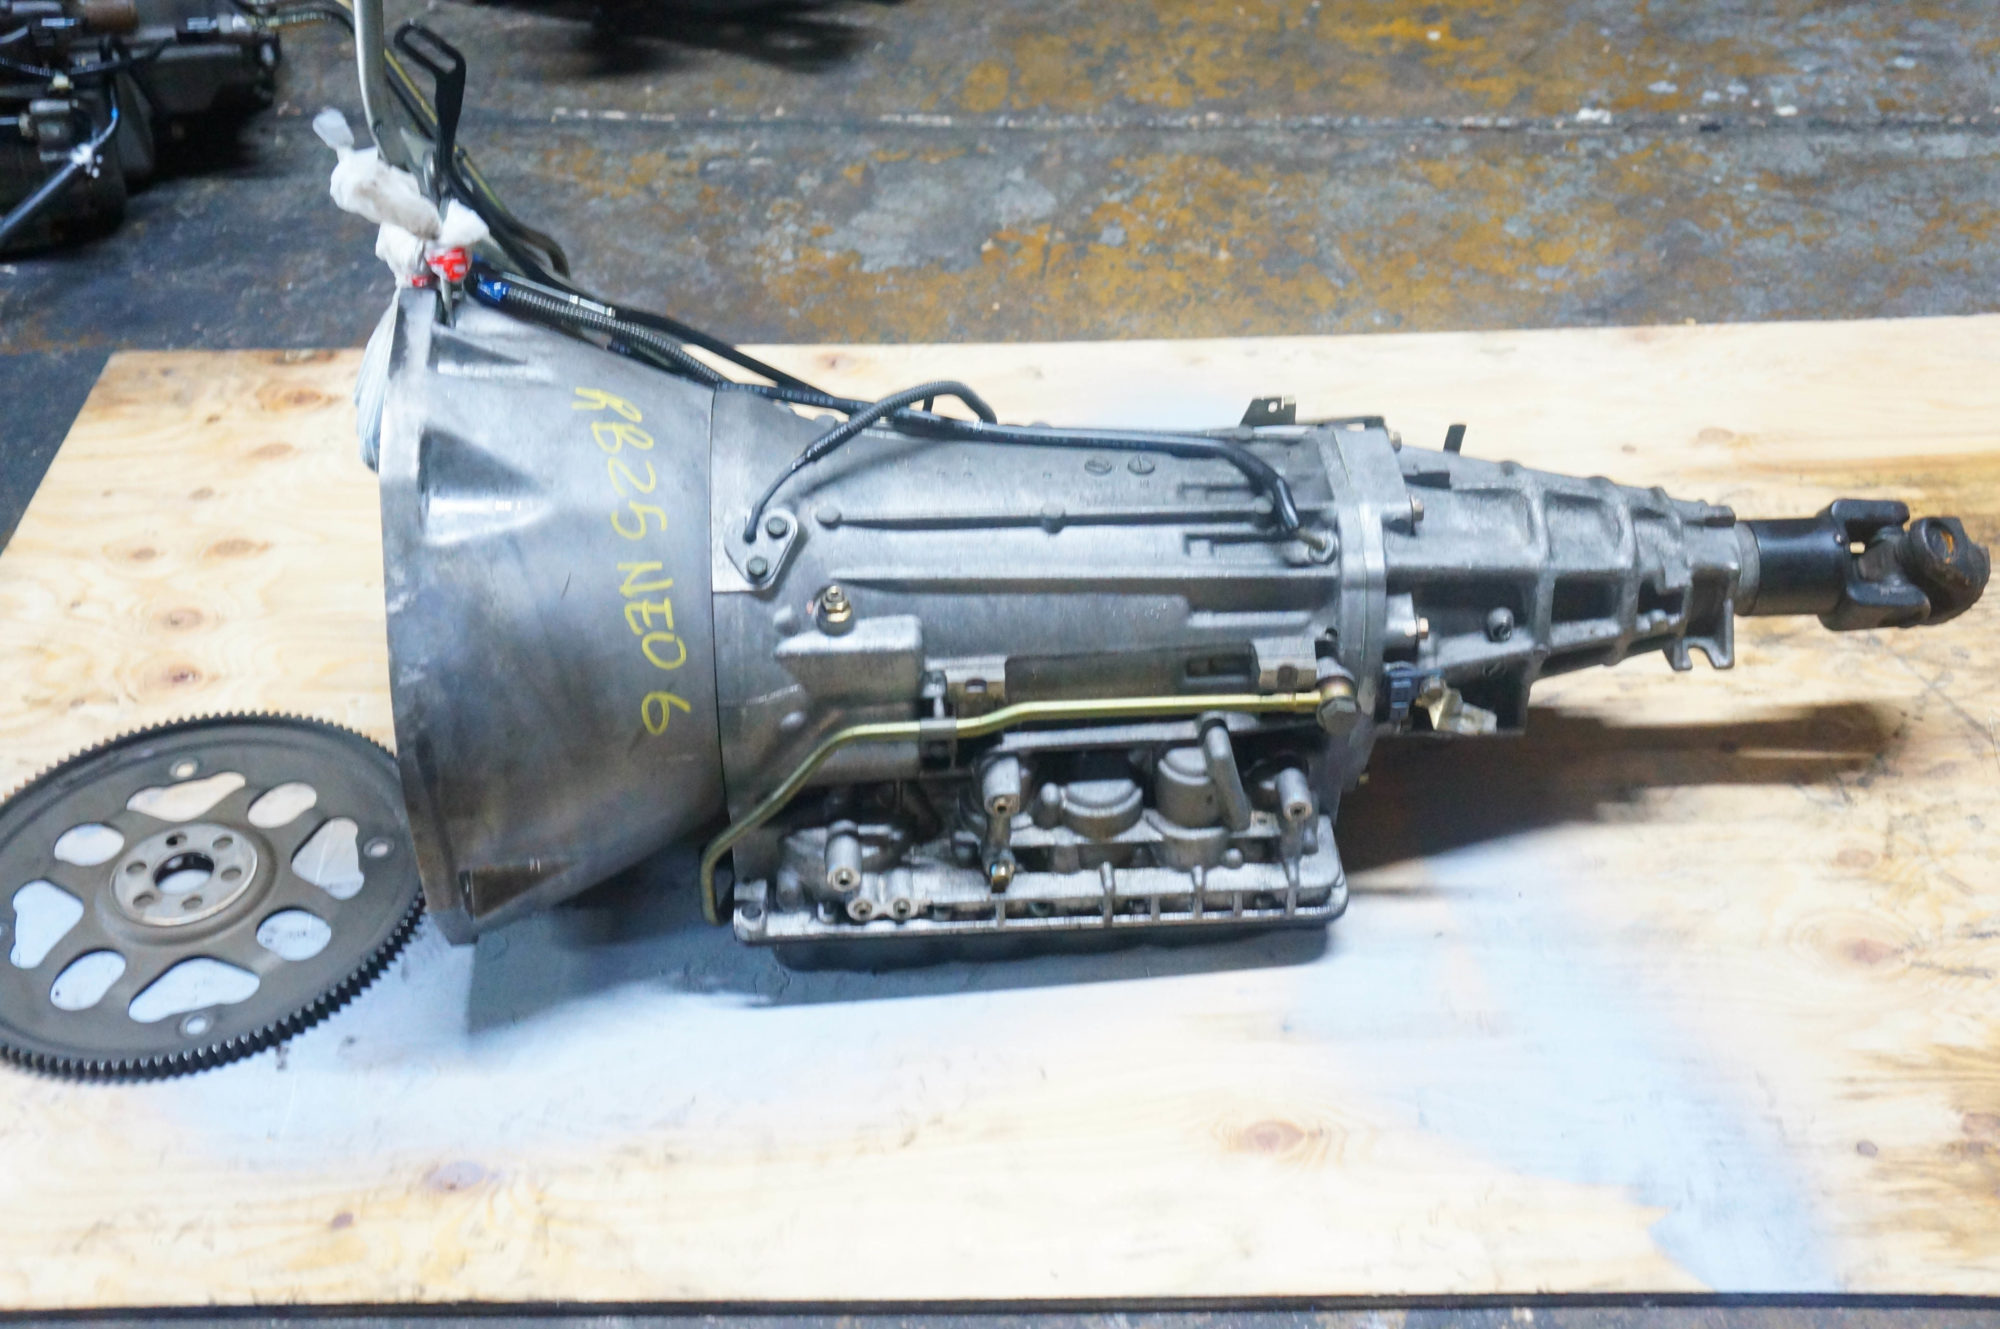 JDM NISSAN RB25 NEO 6 AUTOMATIC TRANSMISSION